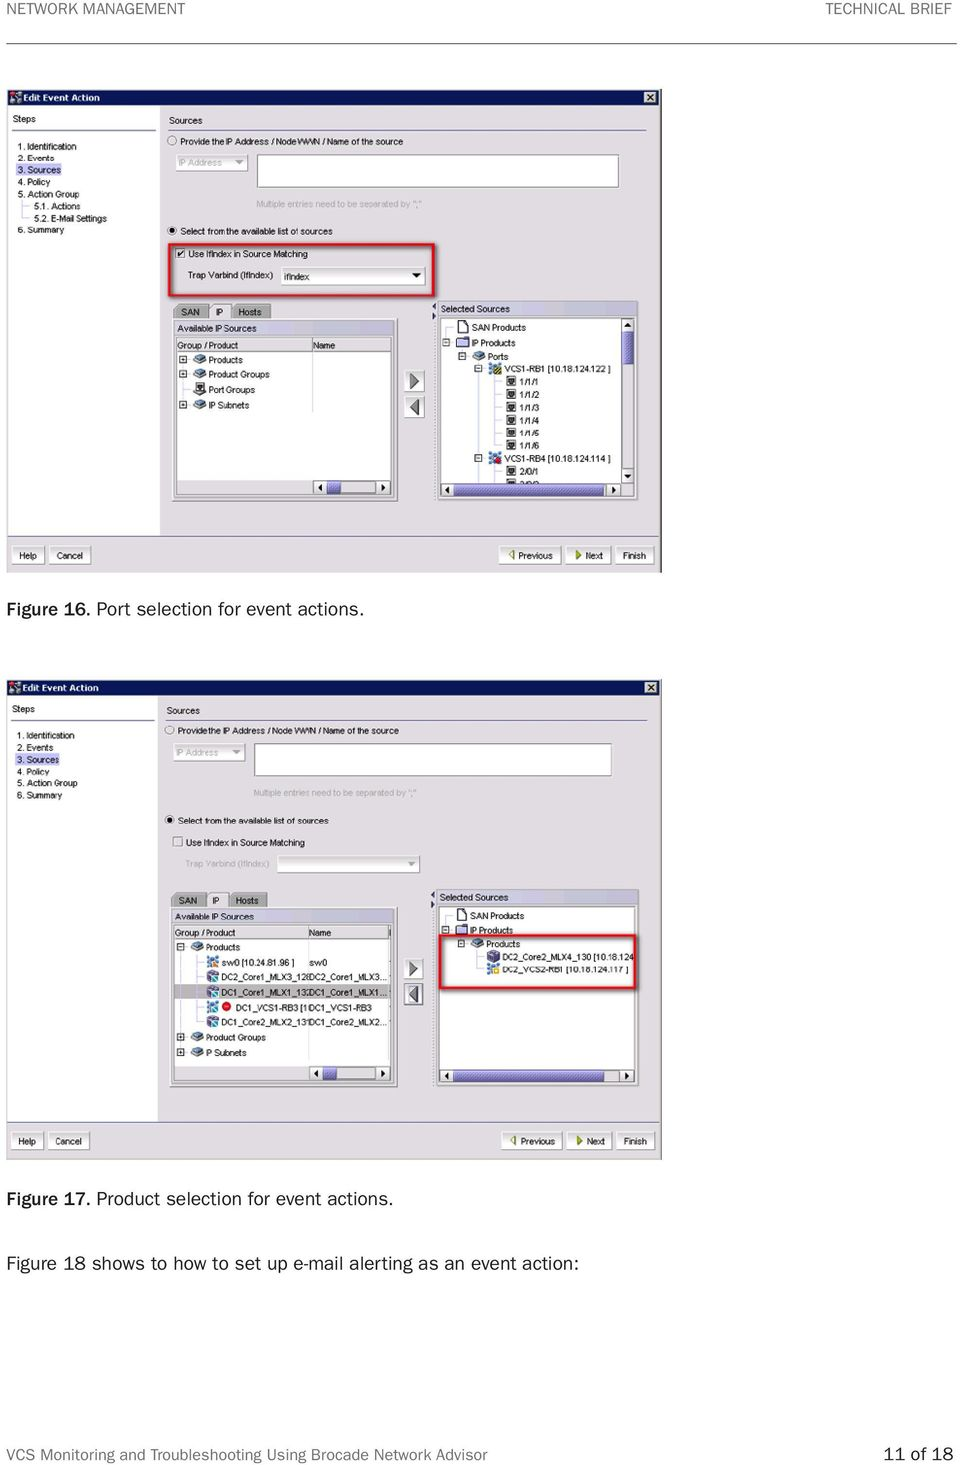 Figure 18 shows to how to set up e-mail alerting as an